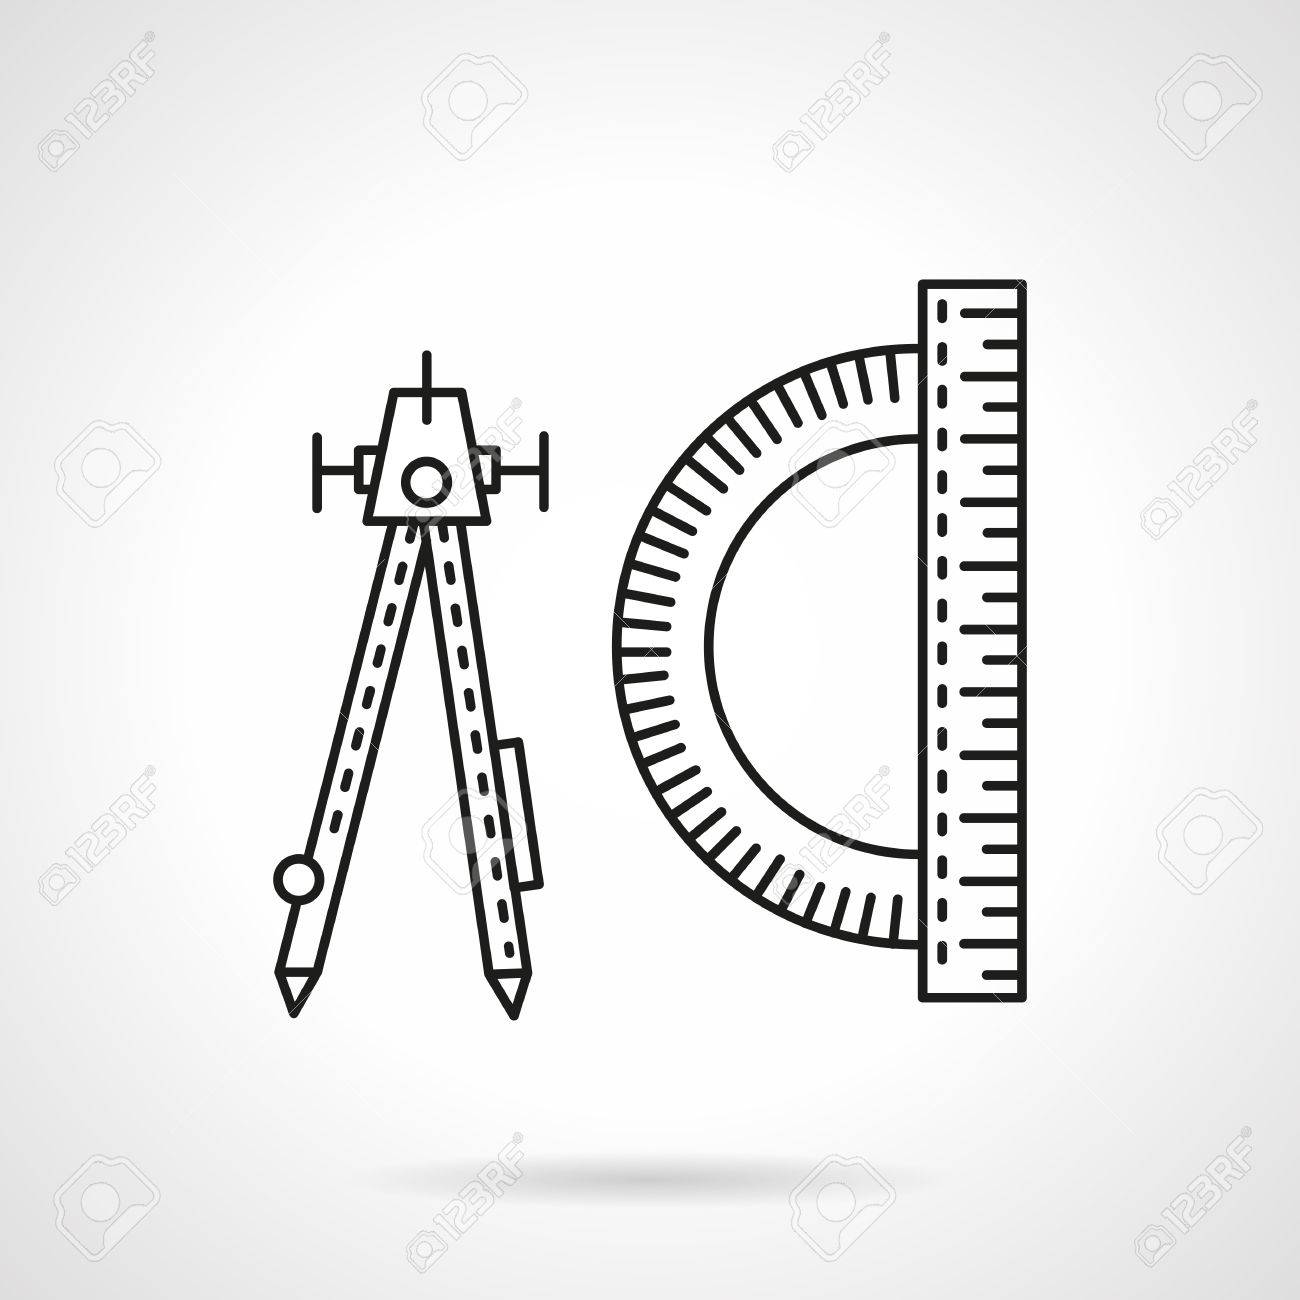 Tools and items for engineers, designers, architect  Technical